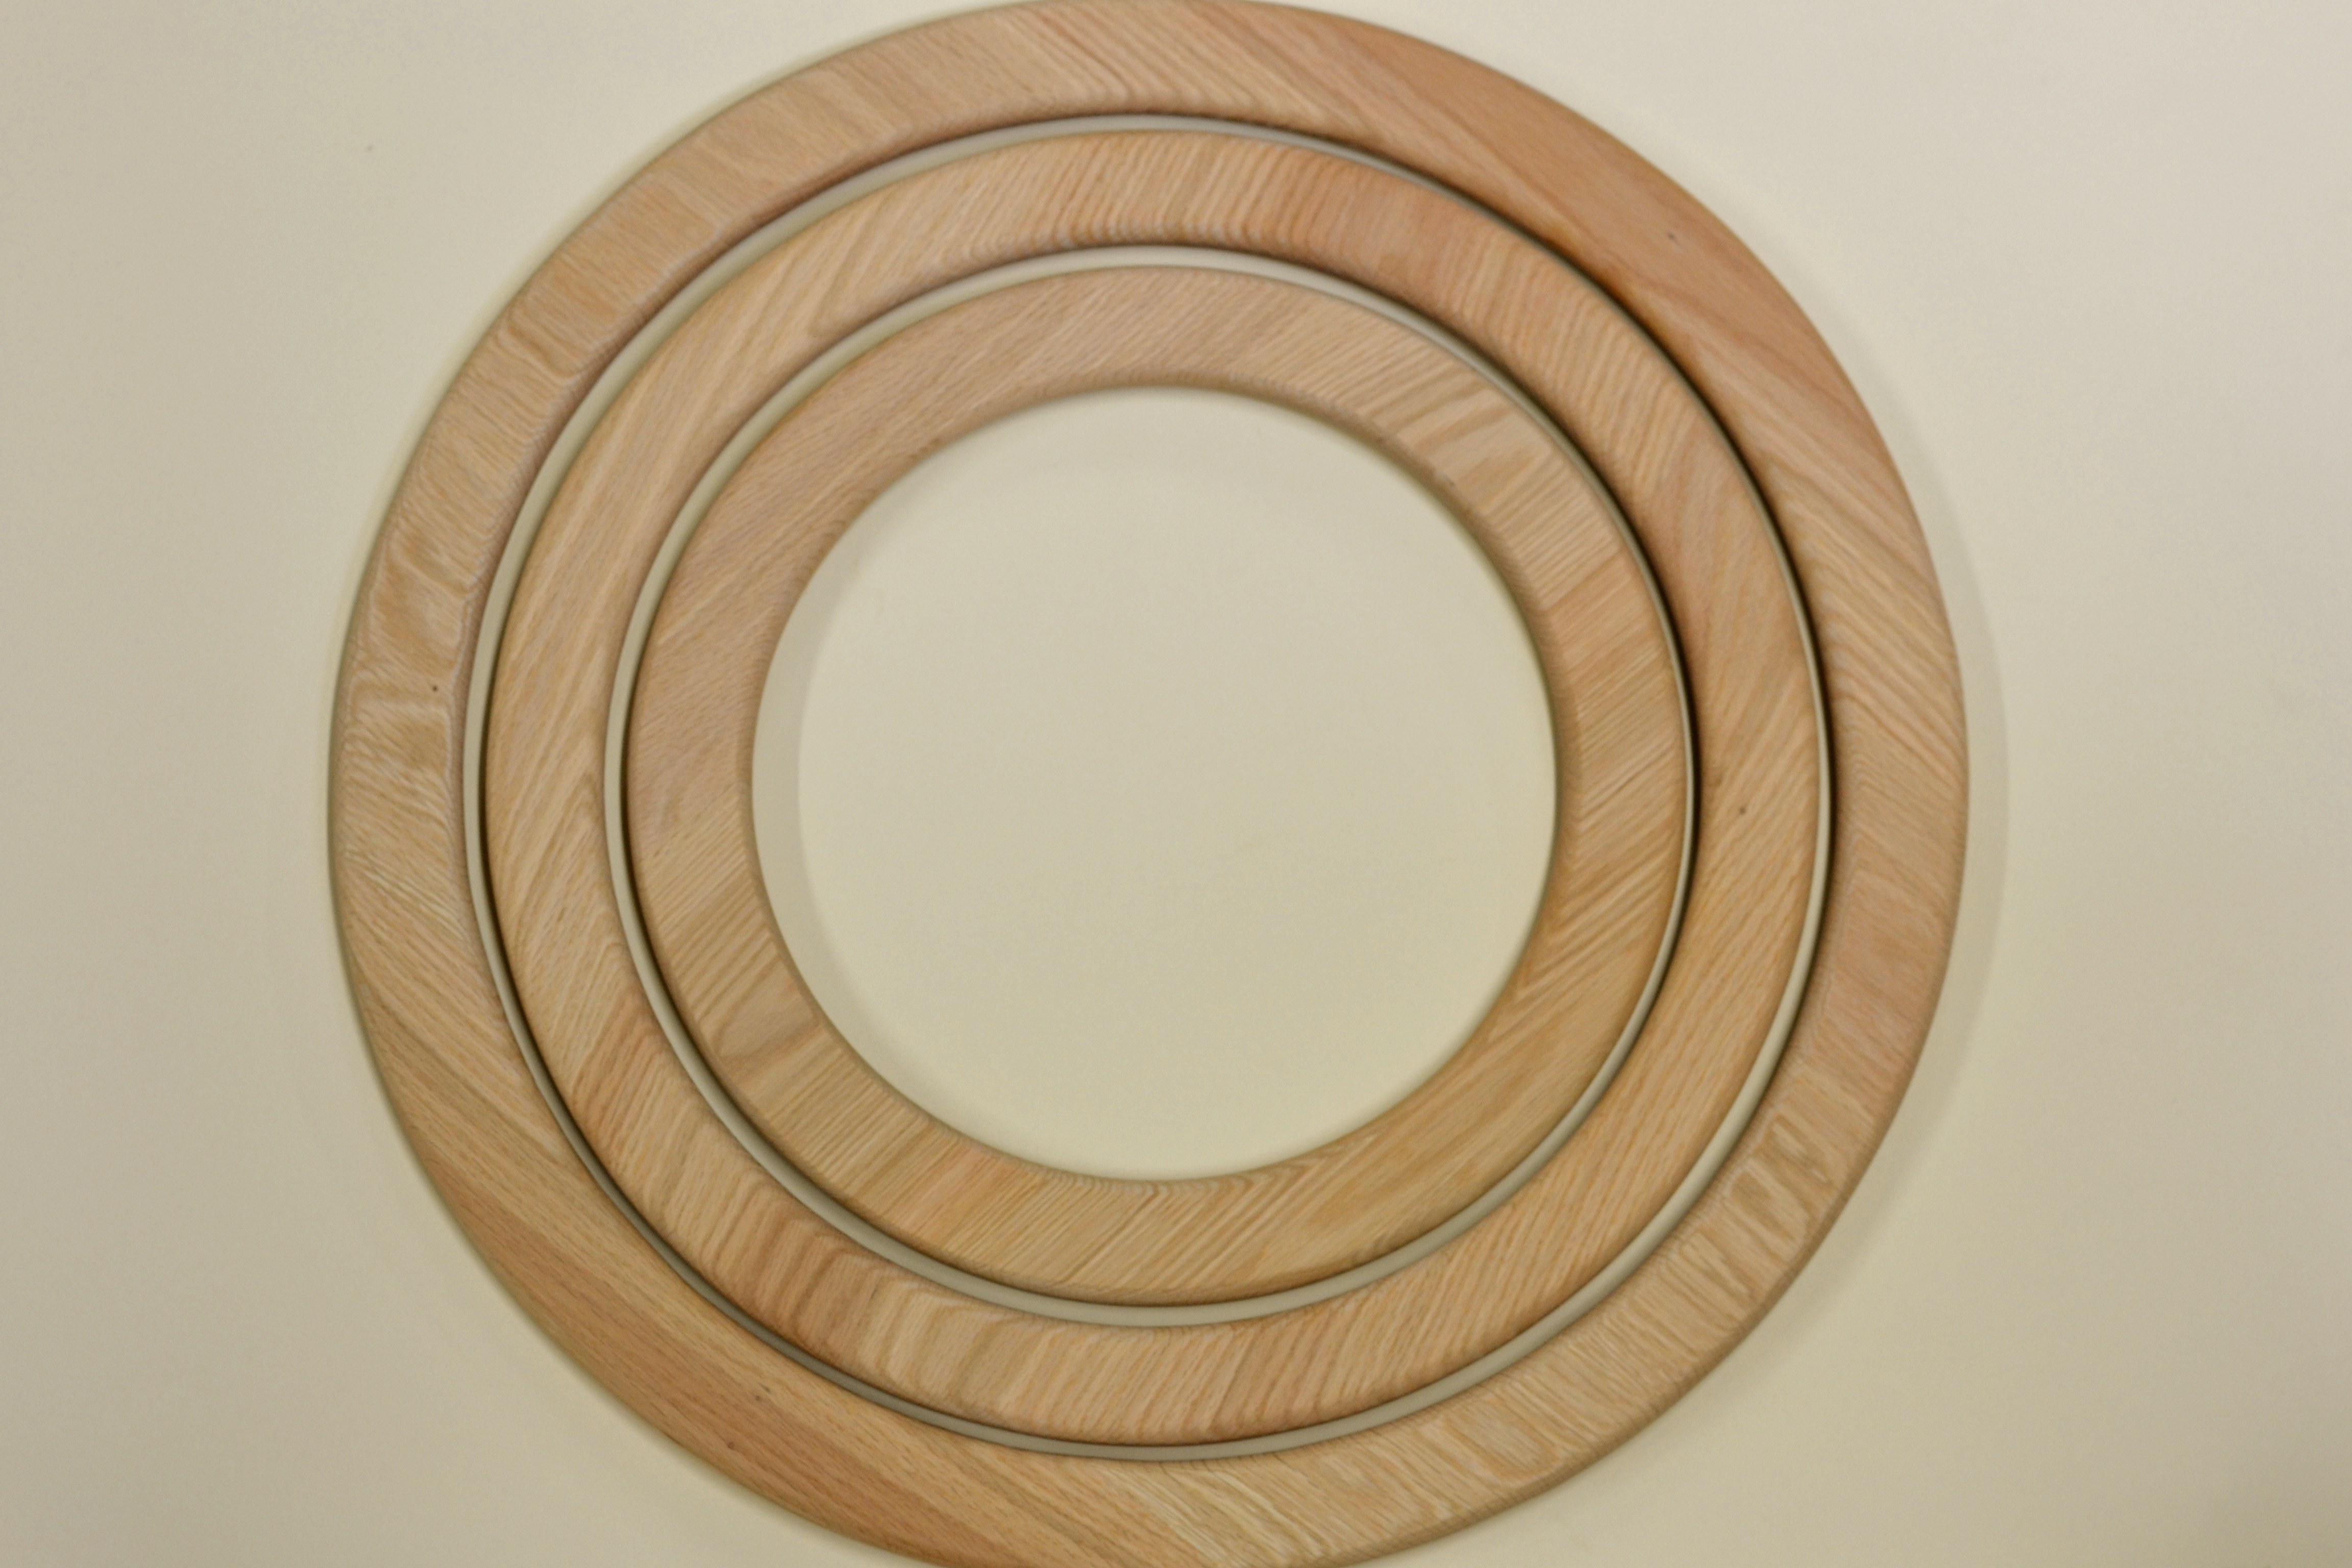 Round wood picture frames round designs magnificent round wood picture frame ornament ideas thecheapjerseys Image collections